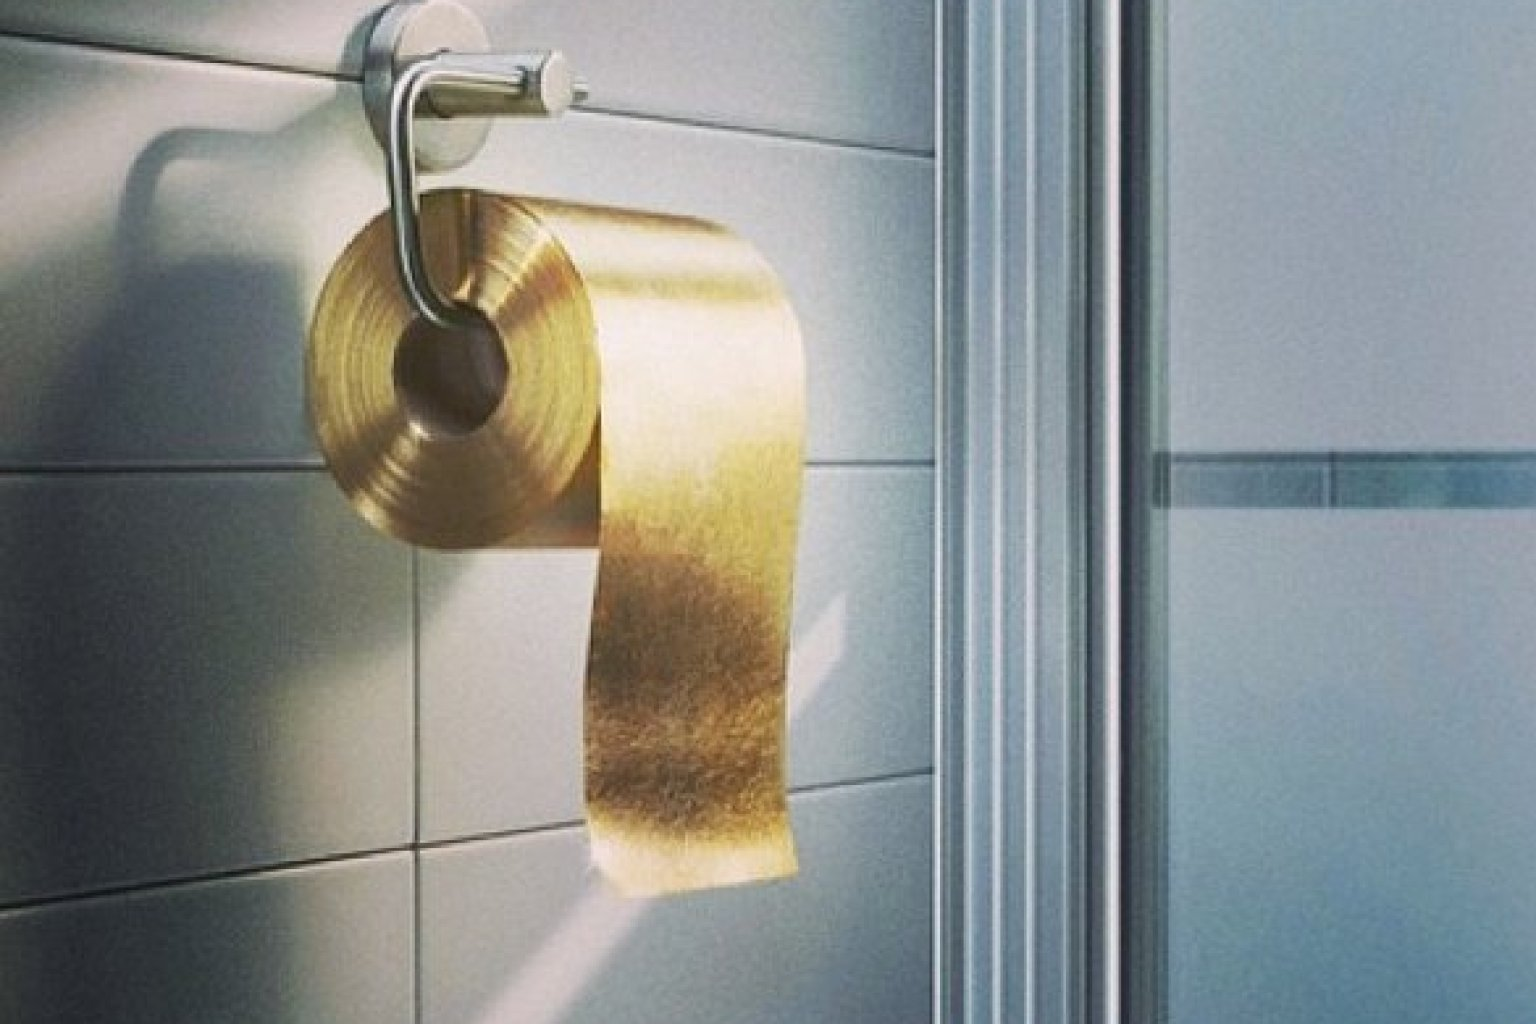 kelly wearstler posts photo of gold toilet paper on her